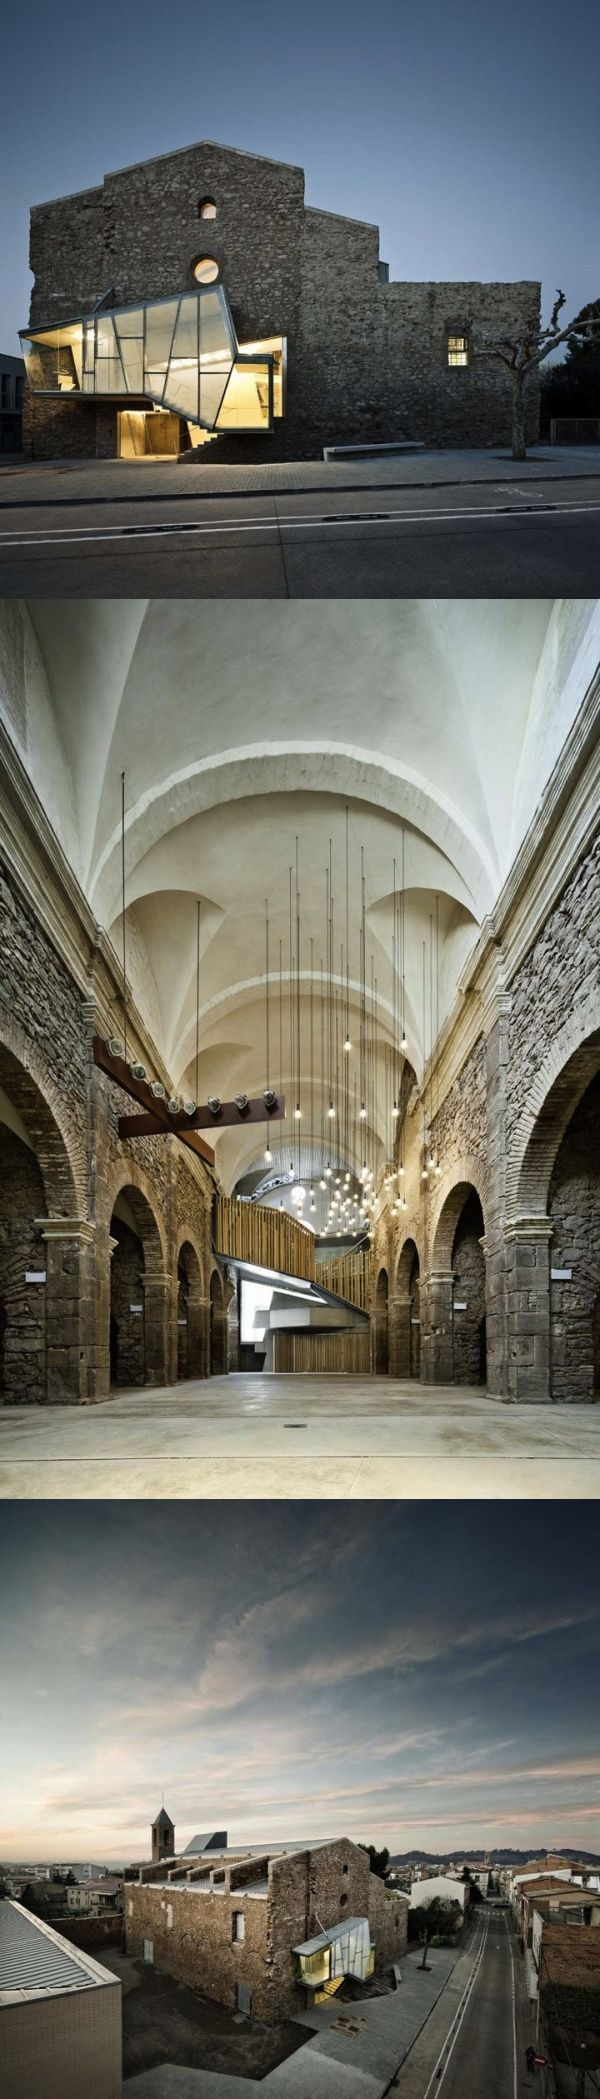 "The Reconversion of Sant Francesc Convent; by: David Closes Architects; ""The intervention preserves the historical heritage of the building and simultaneously adds new values which highlight and singularity the ancient church in a contemporary way."" &;;"